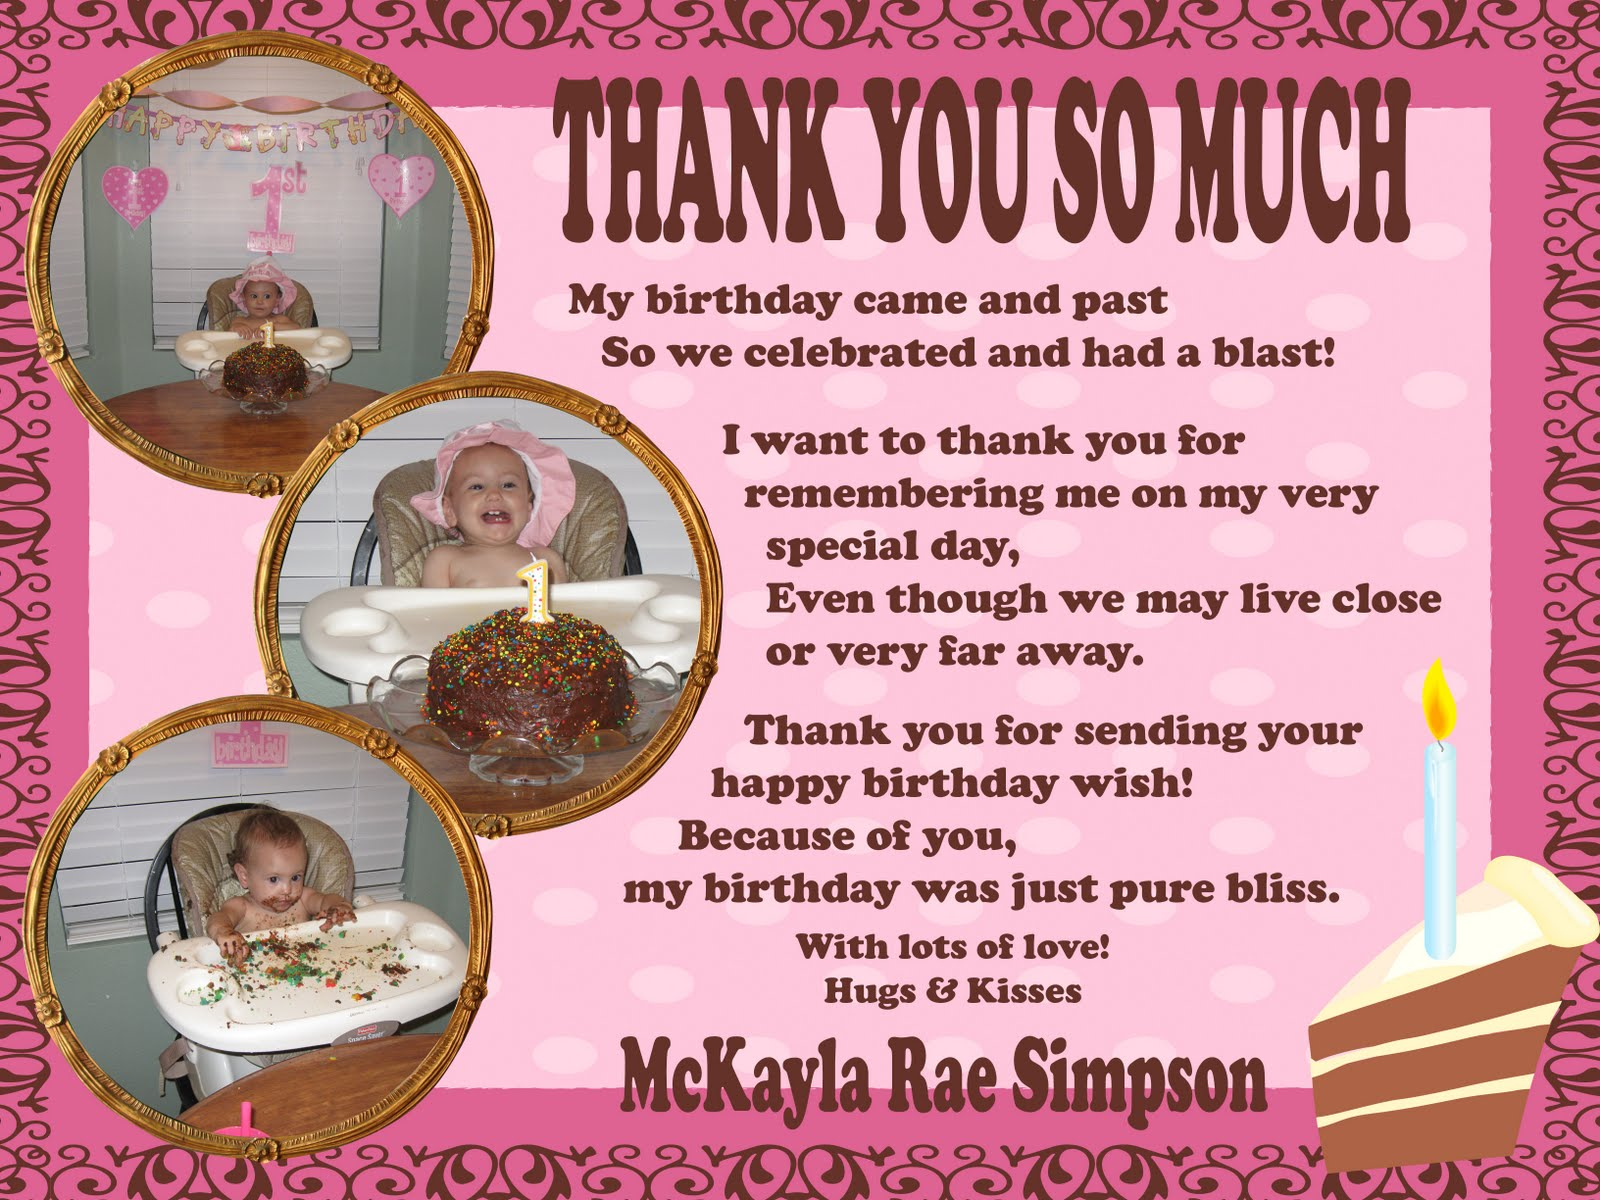 thank you message to friends for surprise birthday party ; 1st+birthday+thanks